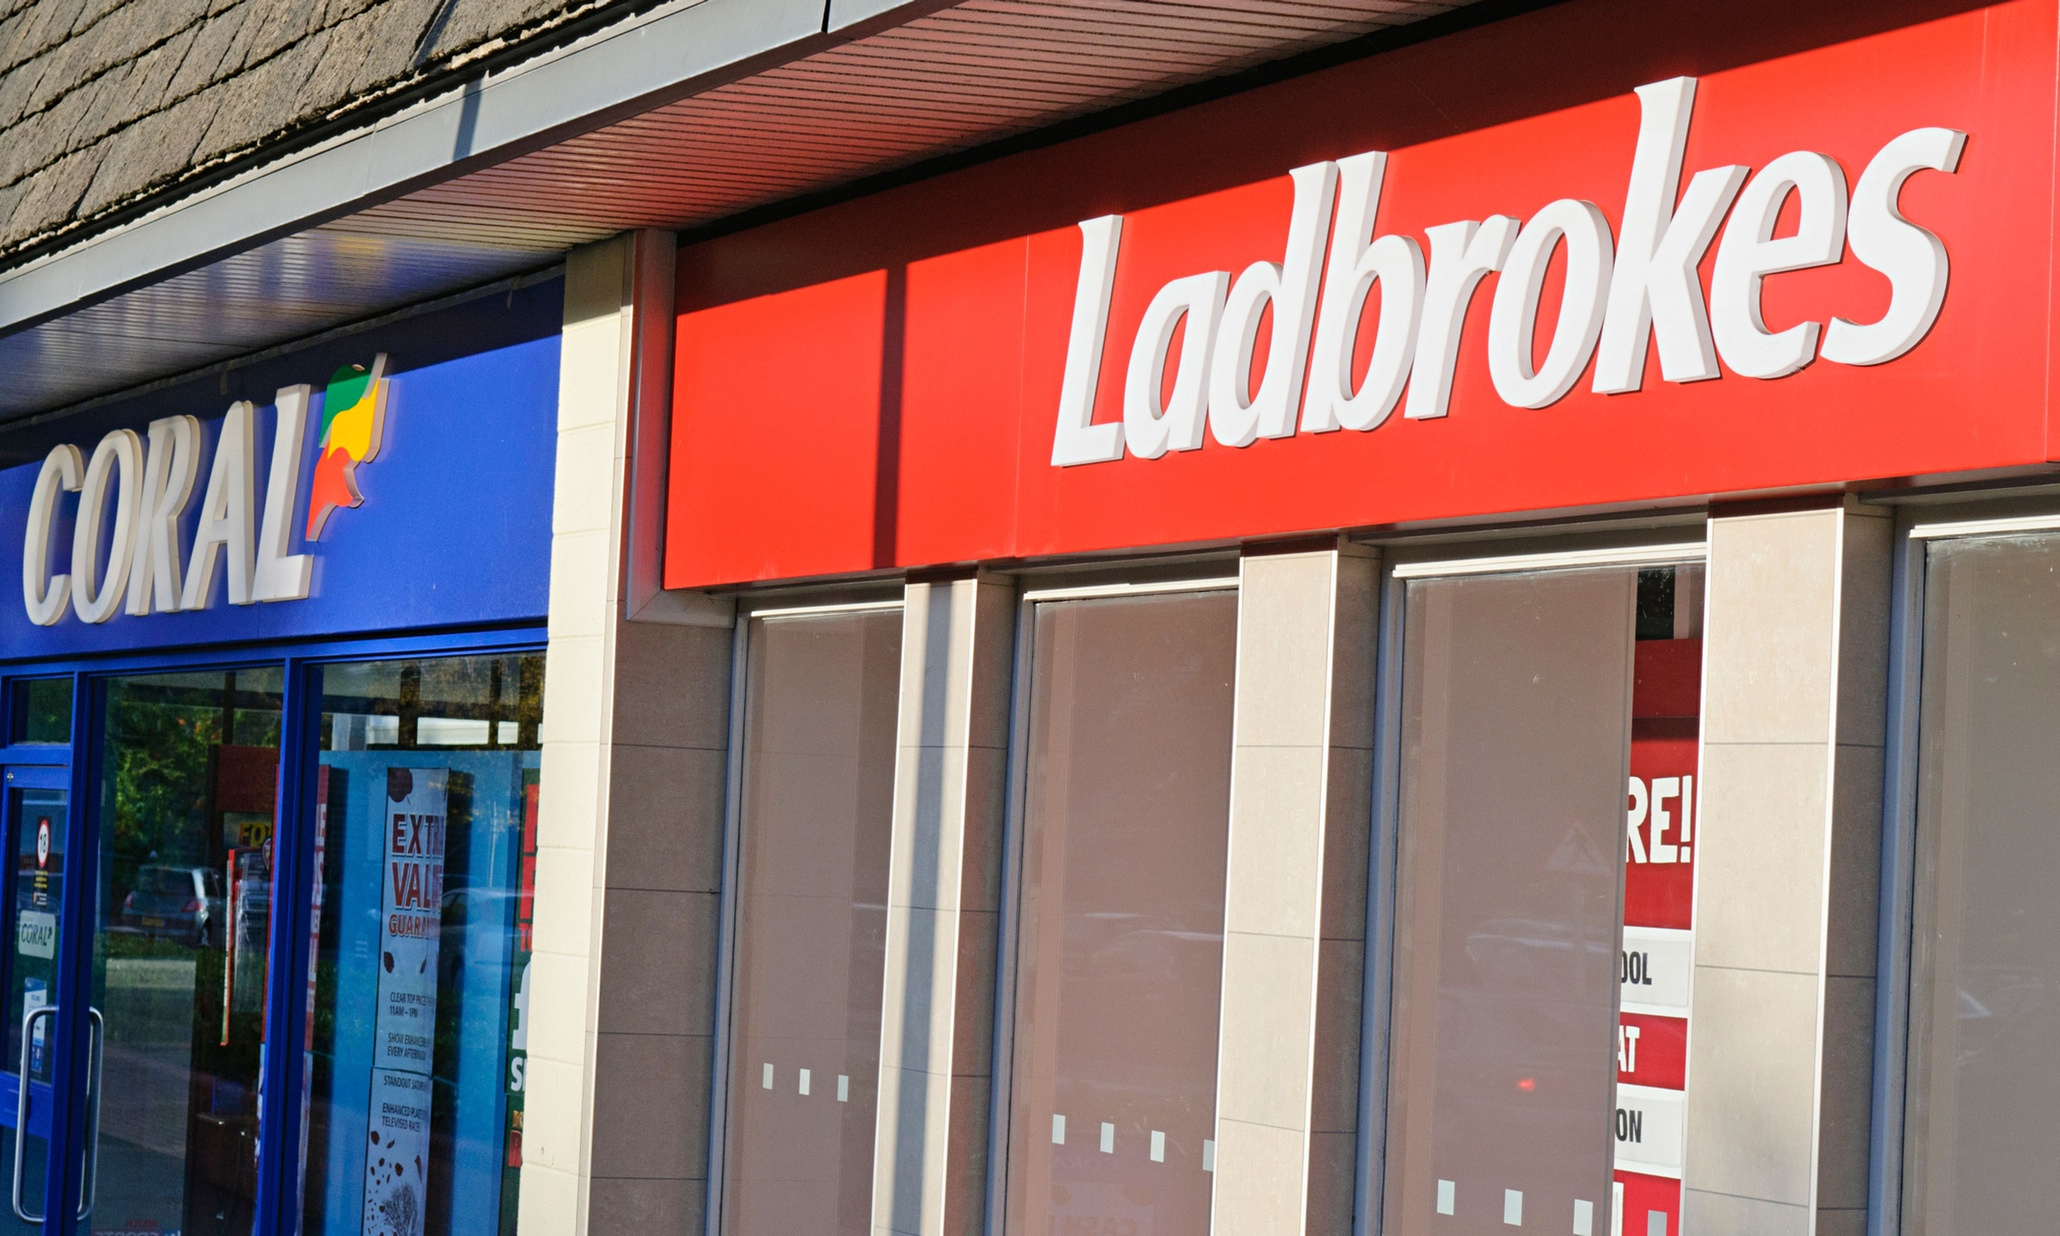 coral uk betting shops for sale